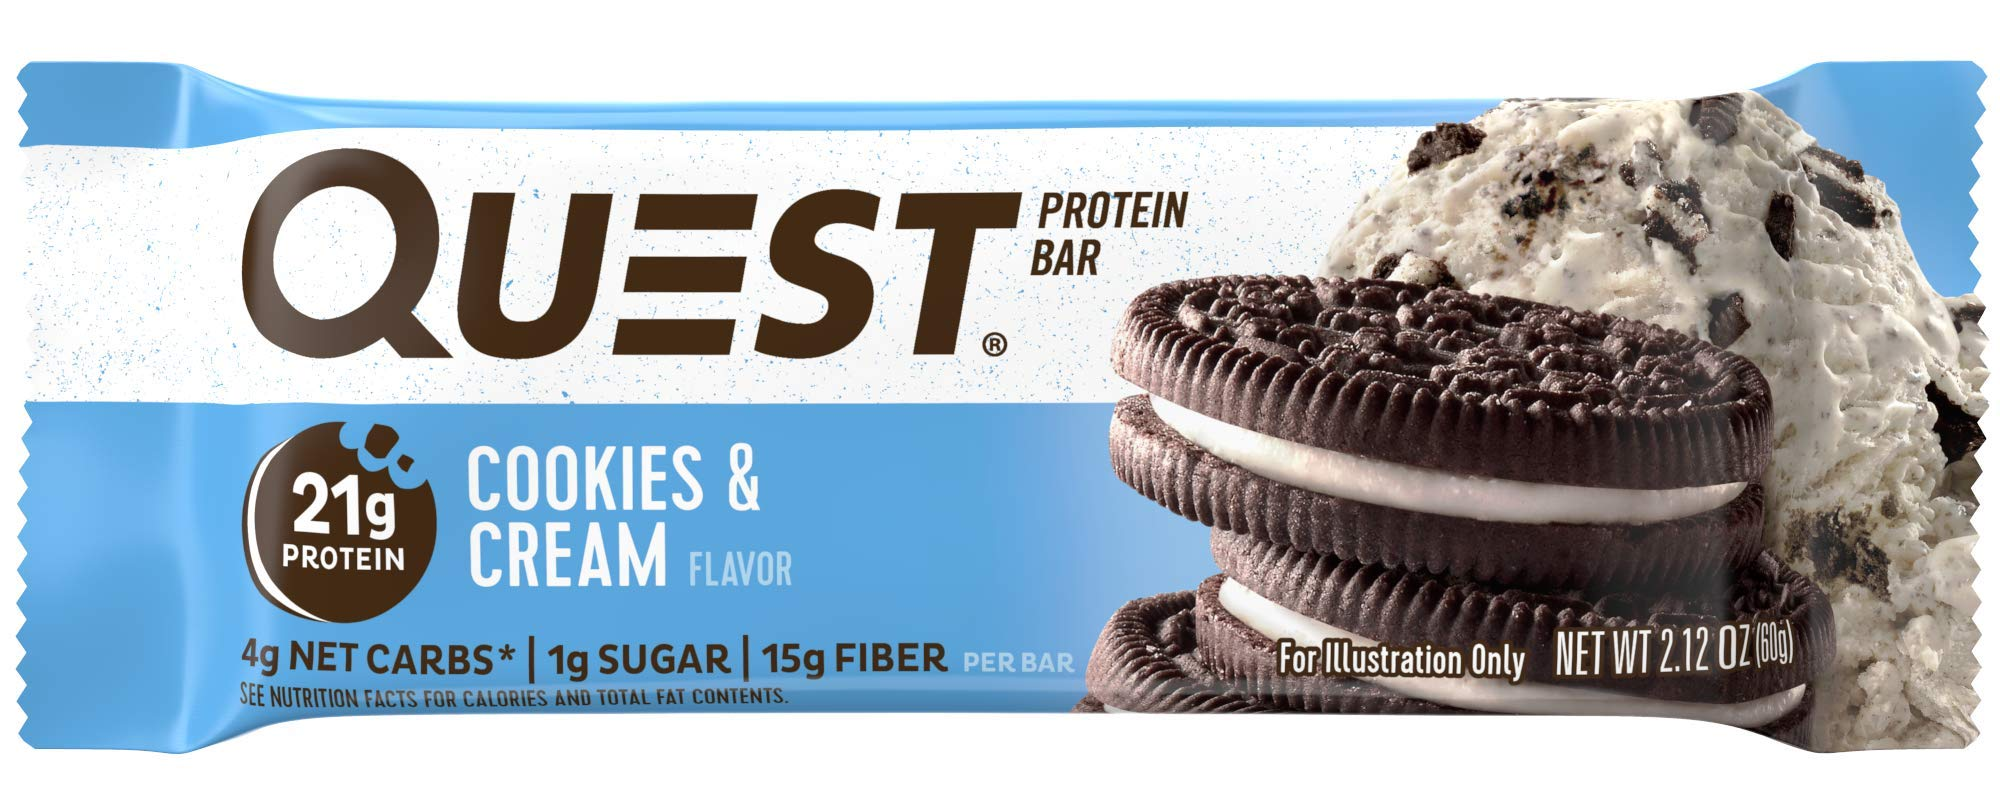 Quest Nutrition Cookies & Cream Protein Bar, High Protein, Low Carb, Gluten Free, Soy Free, Keto Friendly, 12 Count